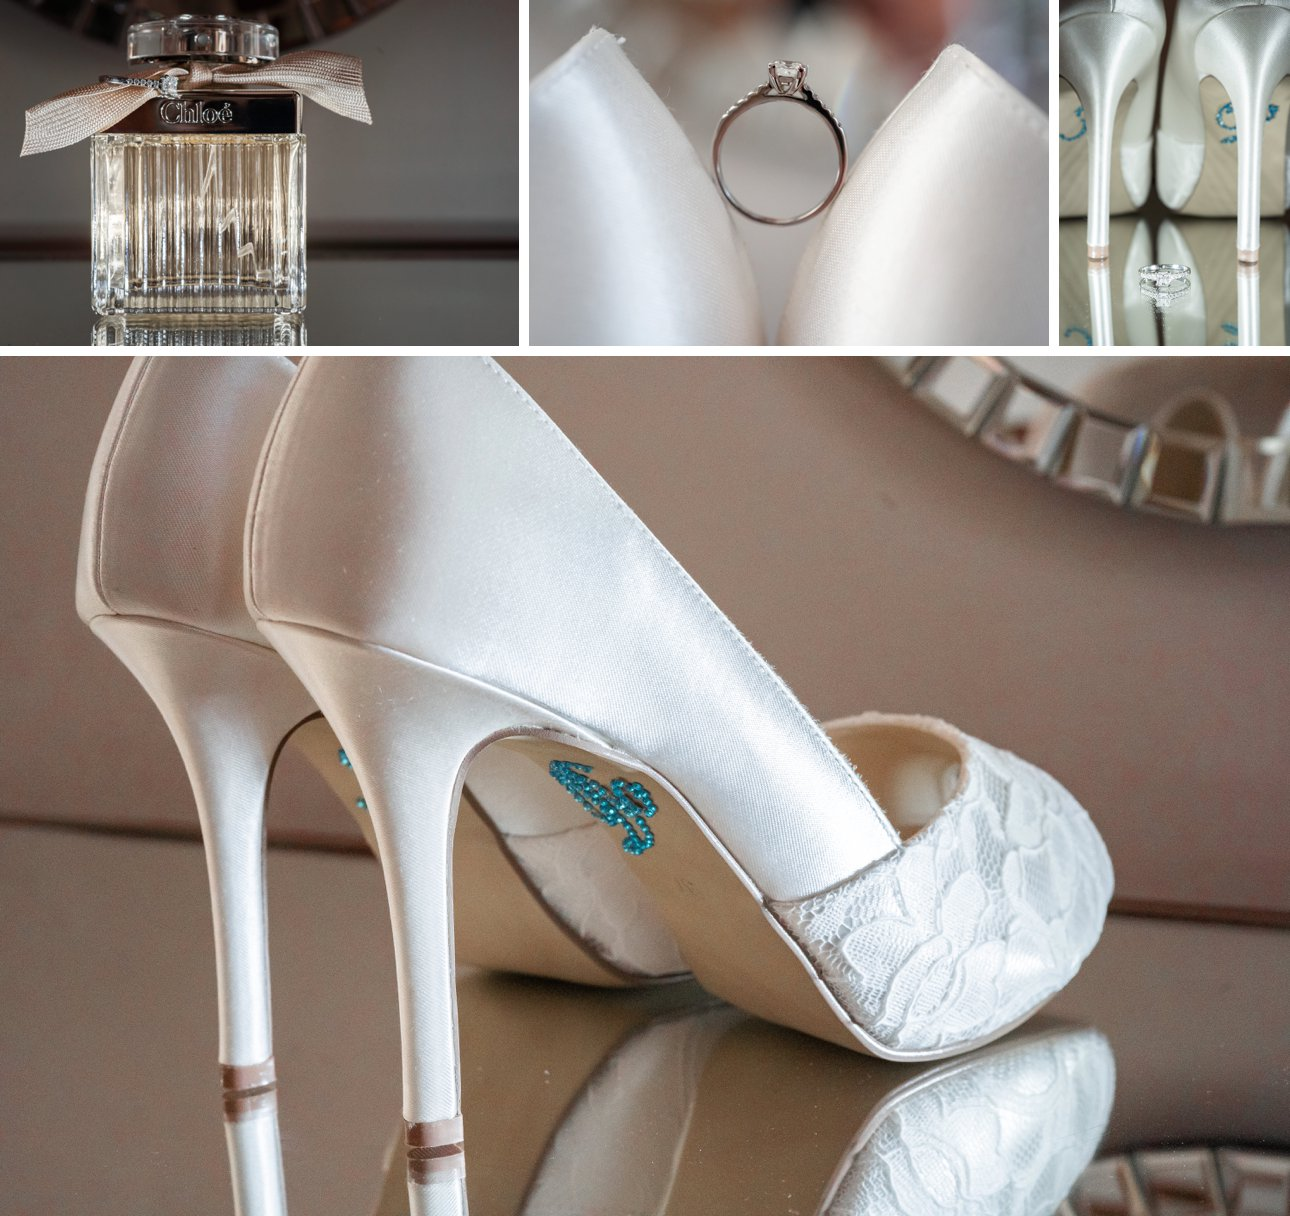 Bridal details including Chloe perfume, a white gold engagement ring and white lace wedding shoes.